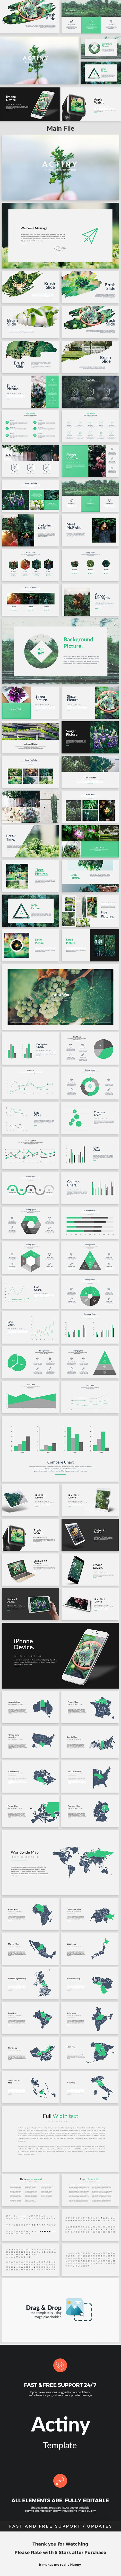 actiny creative powerpoint template — powerpoint ppt #bleached, Presentation templates